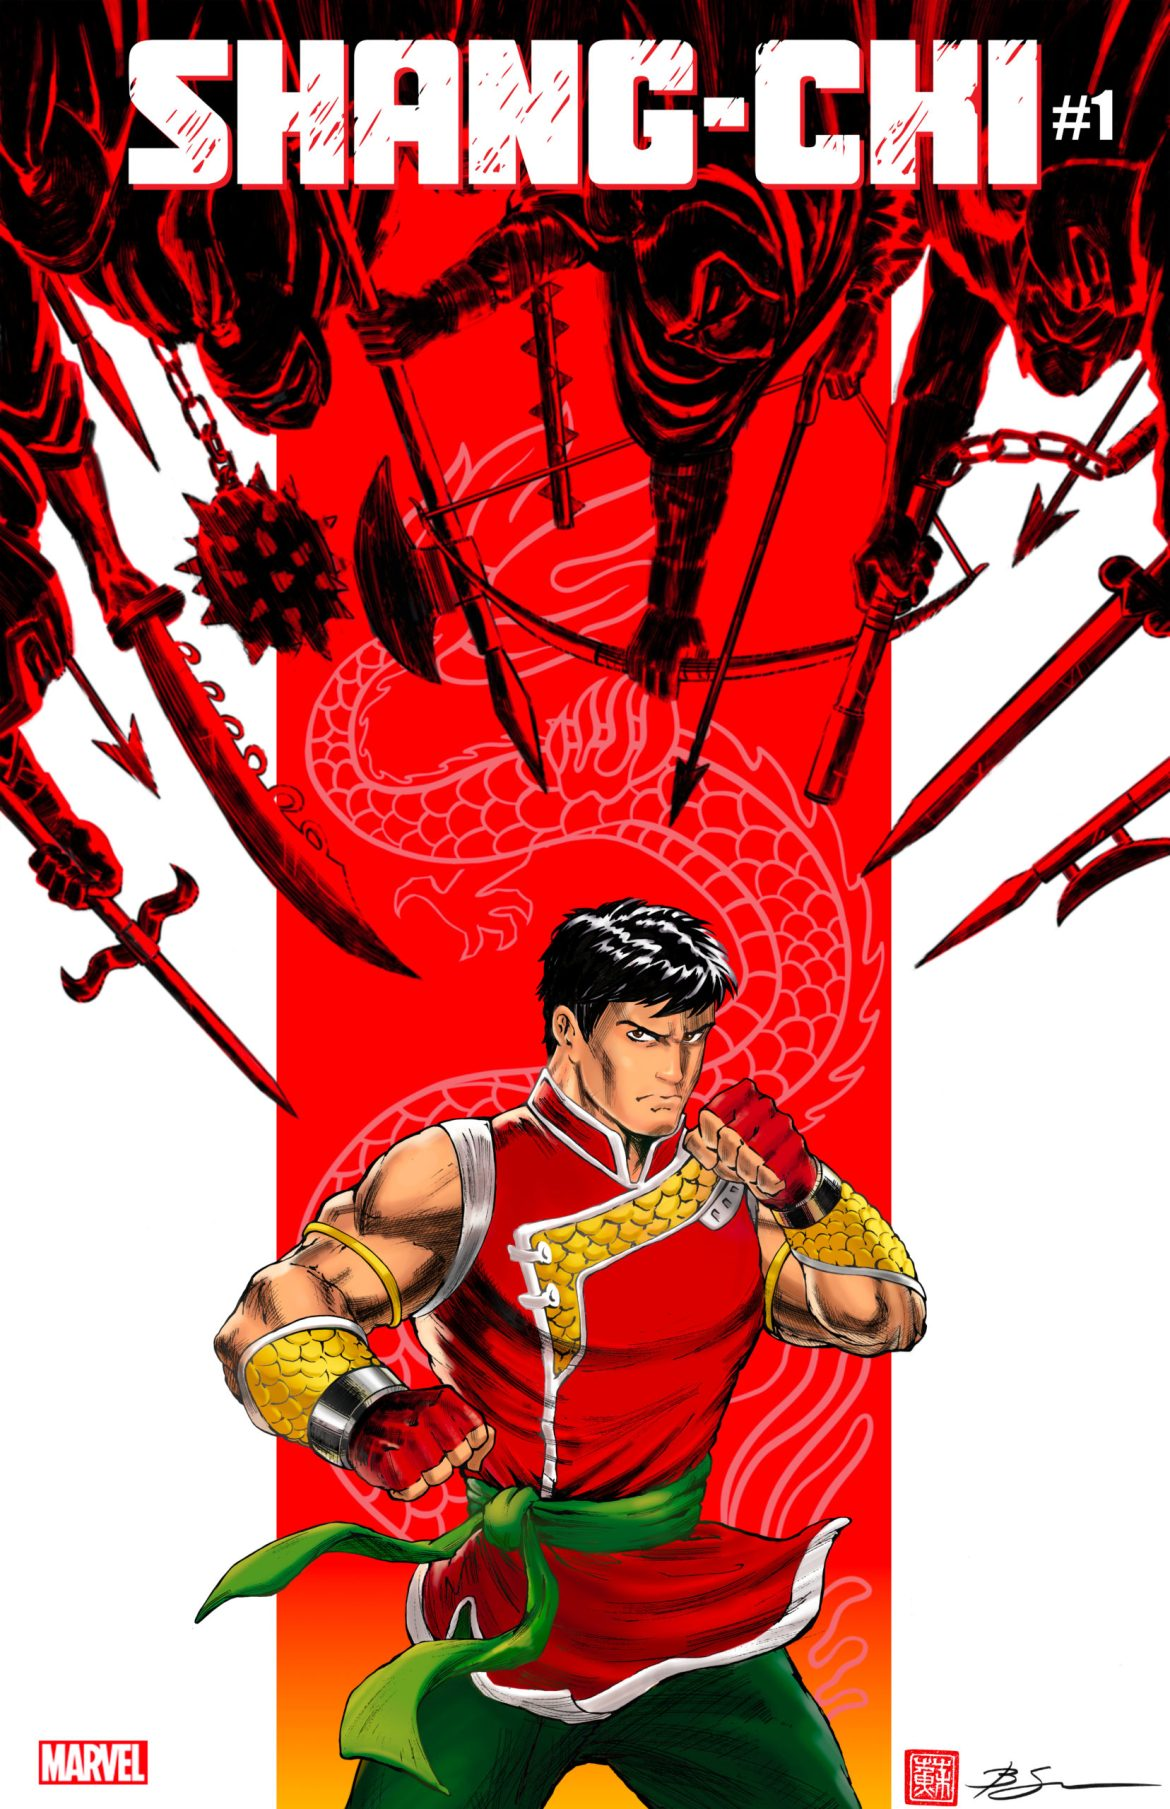 SHANGCHI2020001_SuVariant-scaled Benjamin Su surprises us all with a SHANG-CHI #1 variant cover